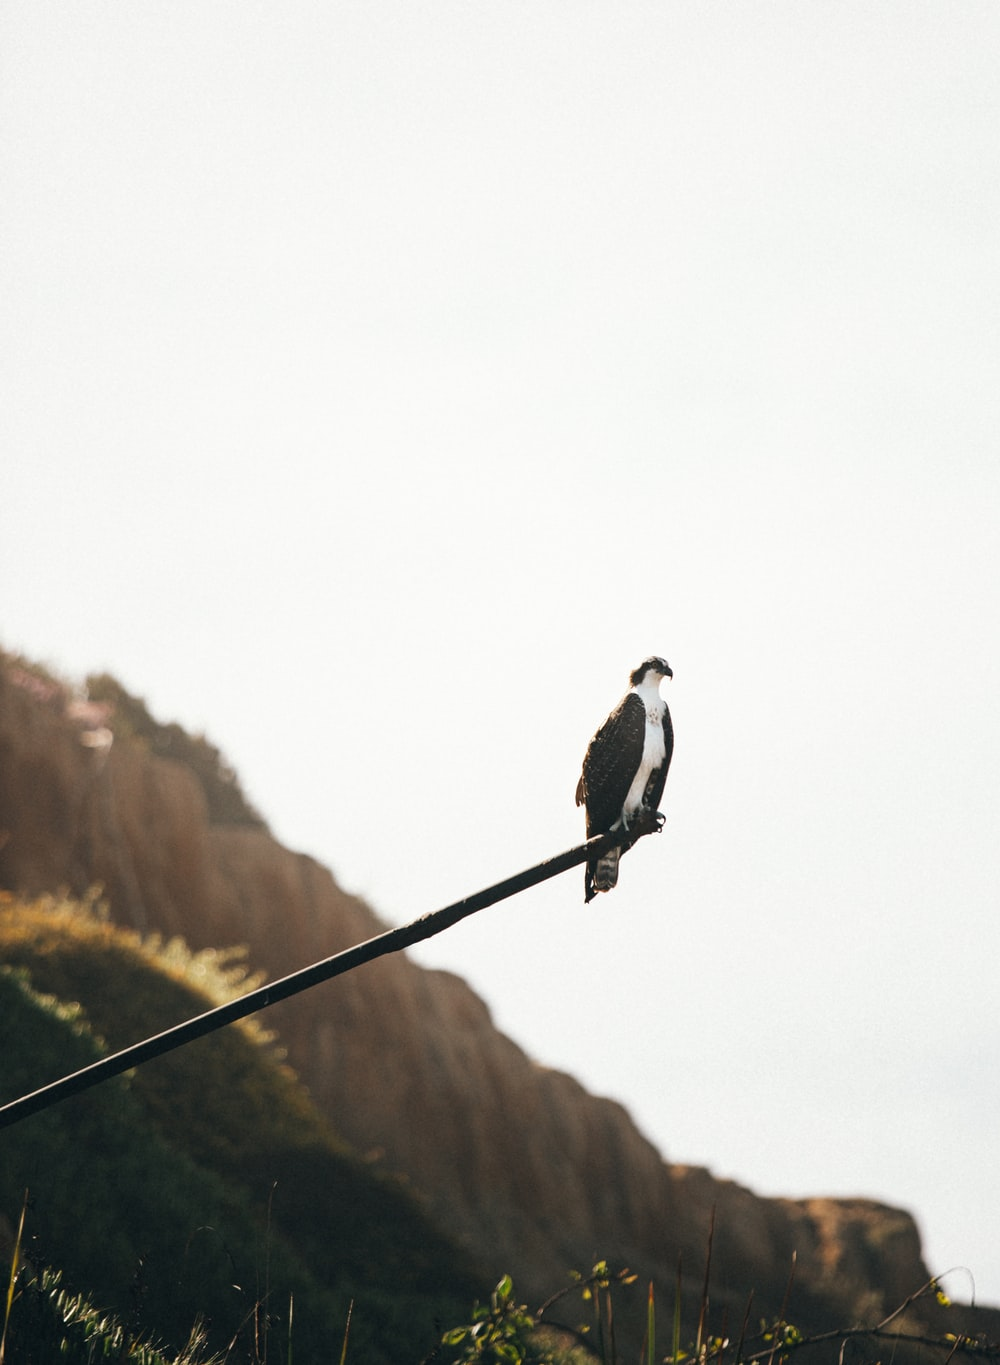 black and white bird on black wire during daytime